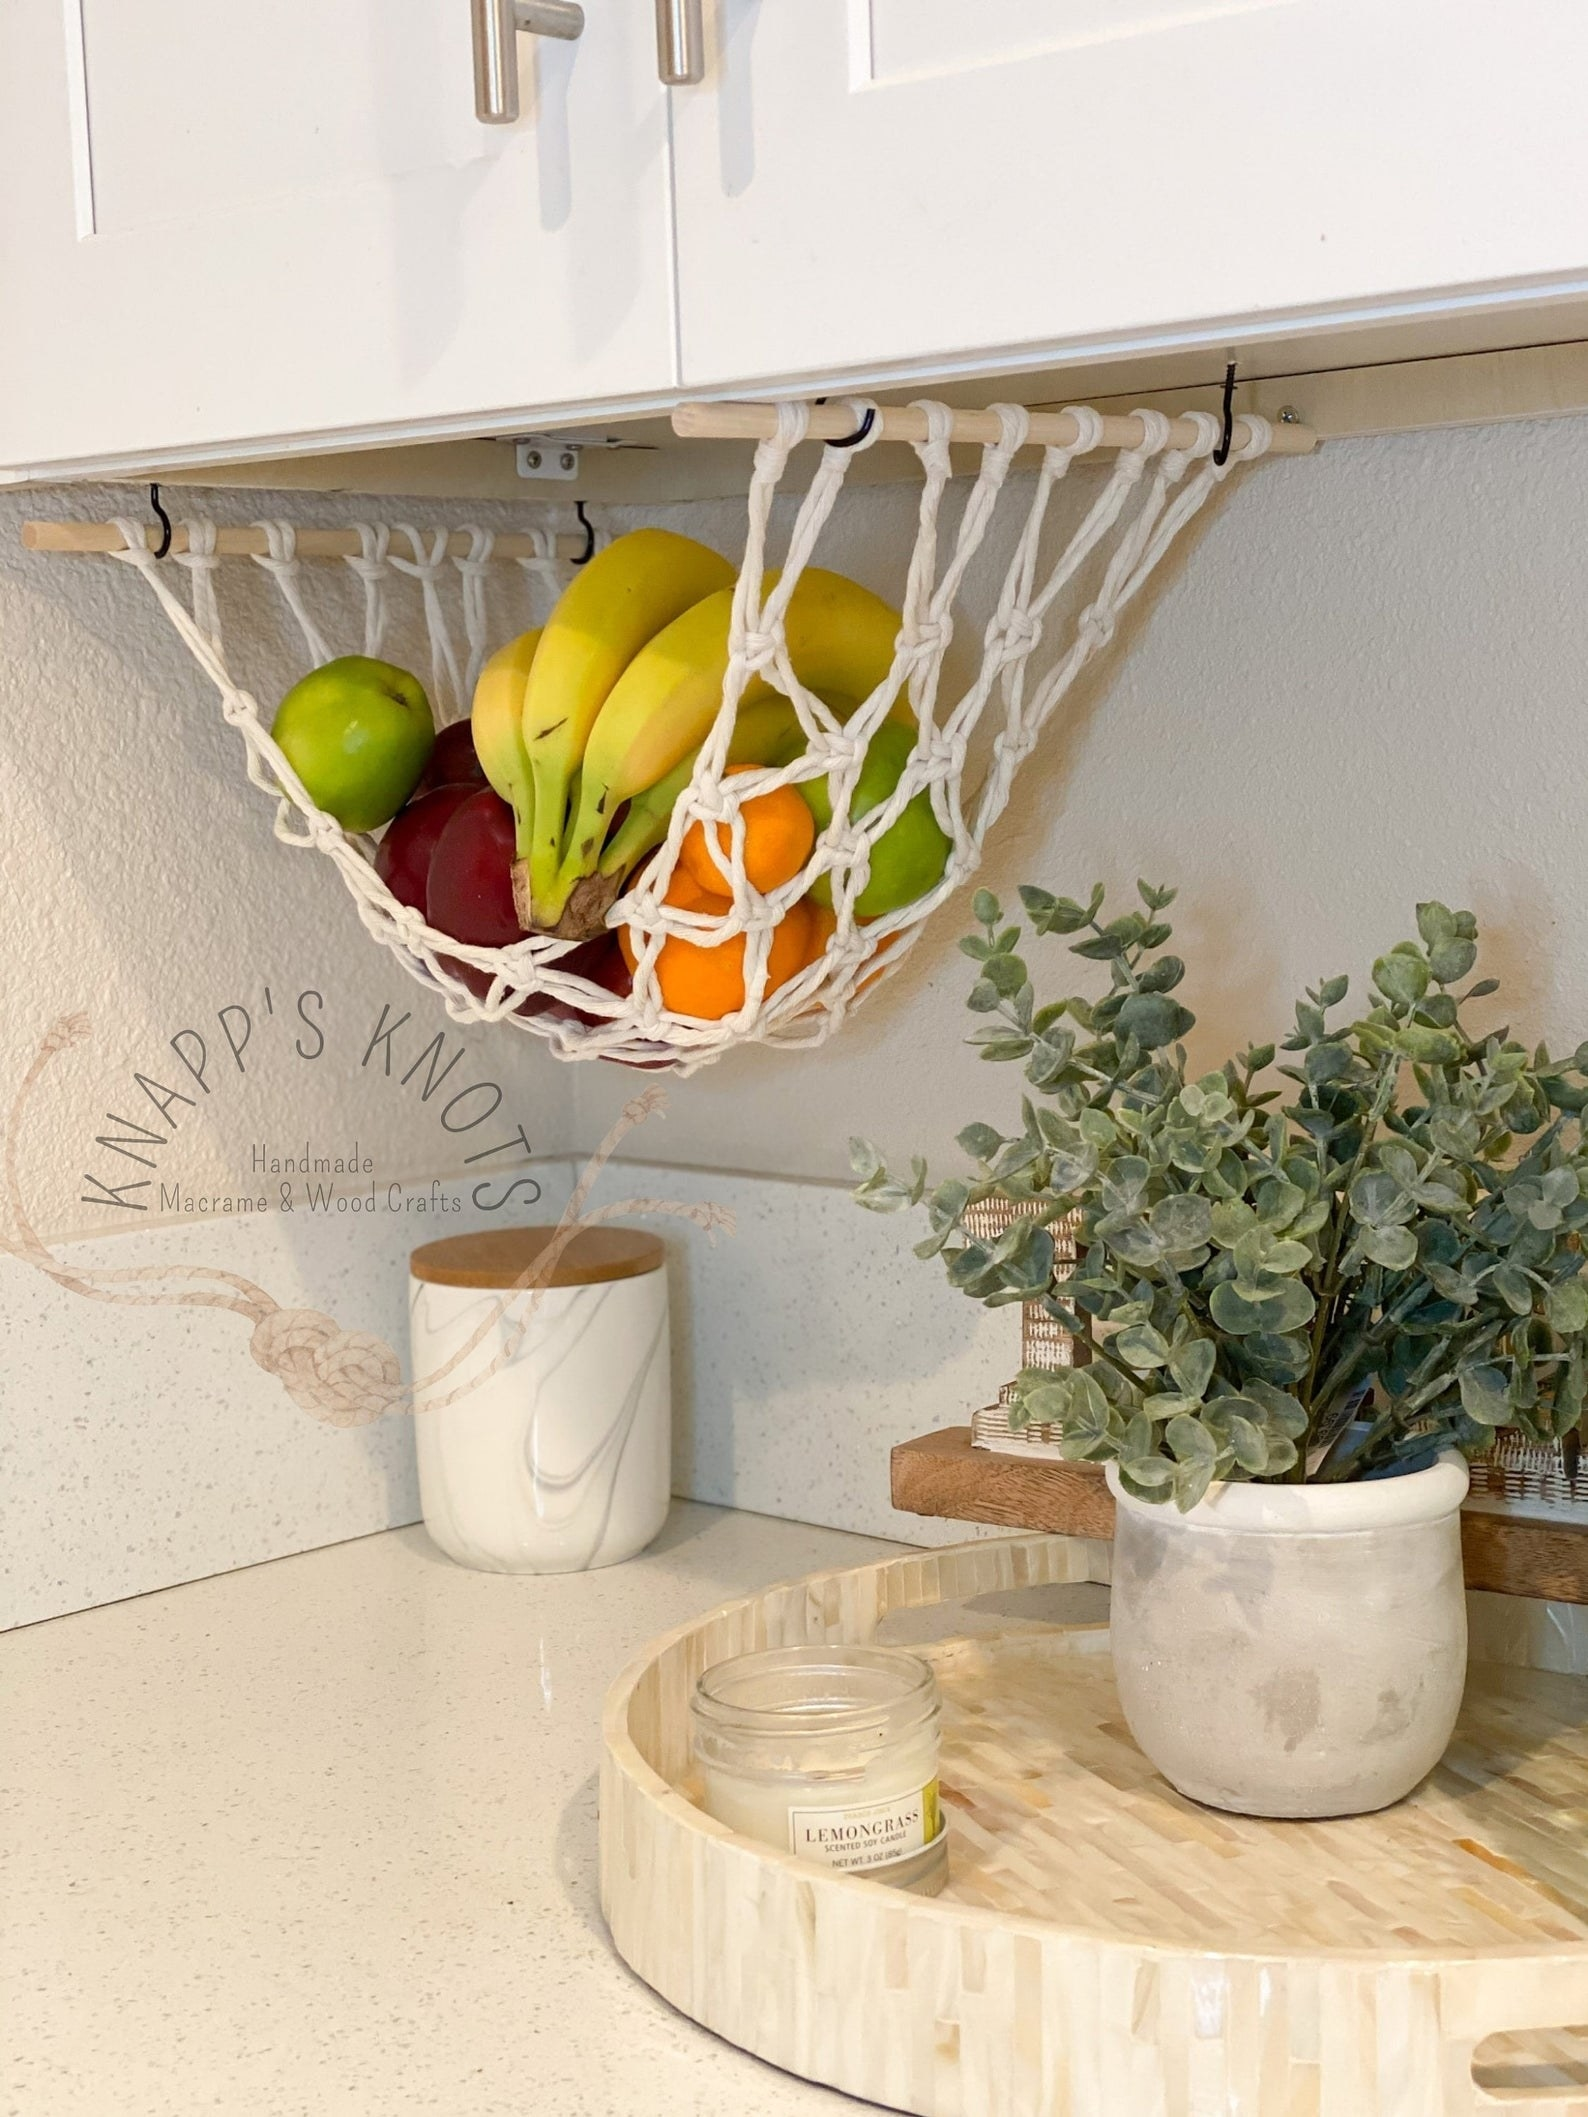 the hammock hanging in a kitchen with fruits on it